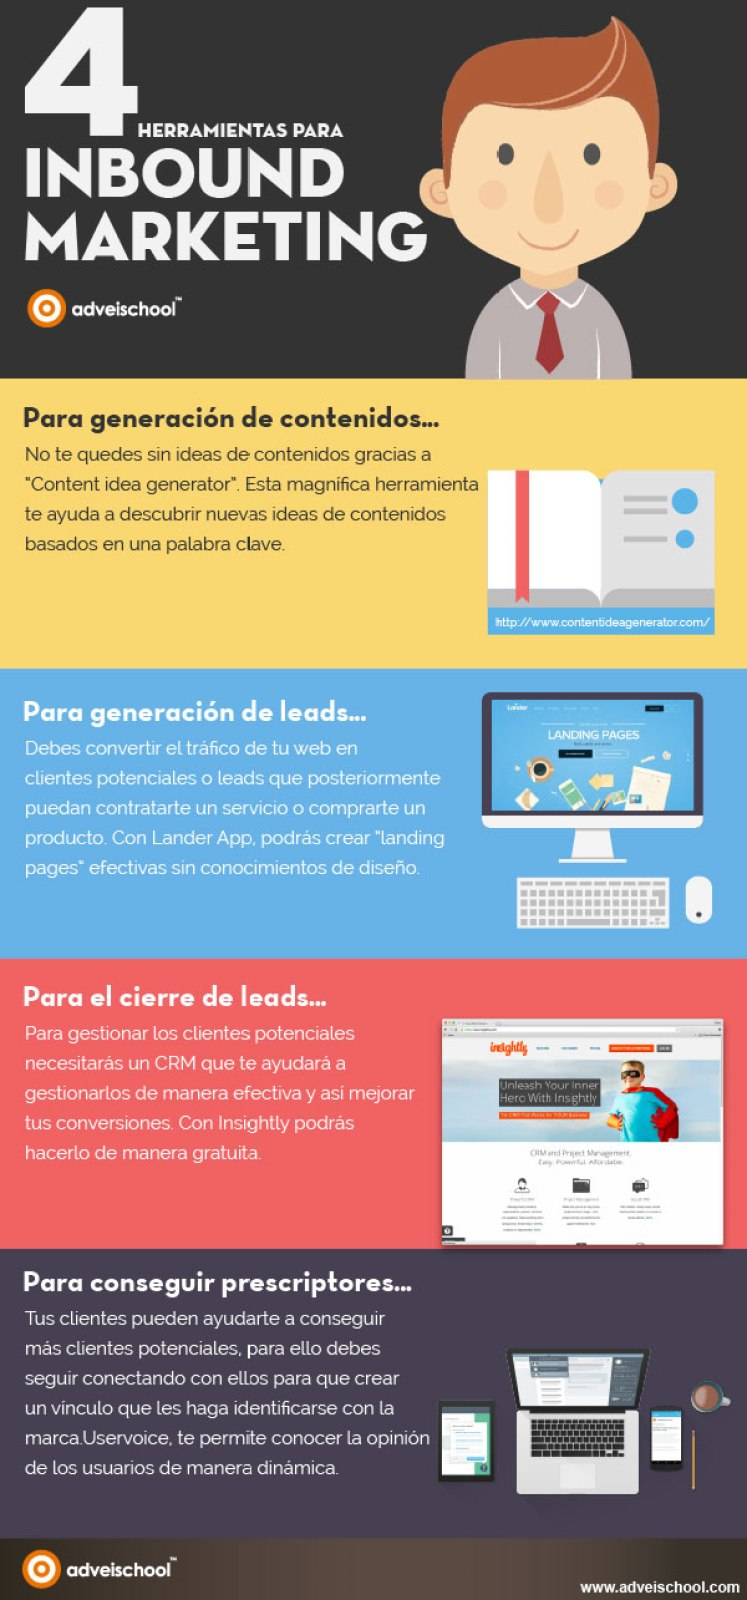 4 herramientas para Inbound Marketing